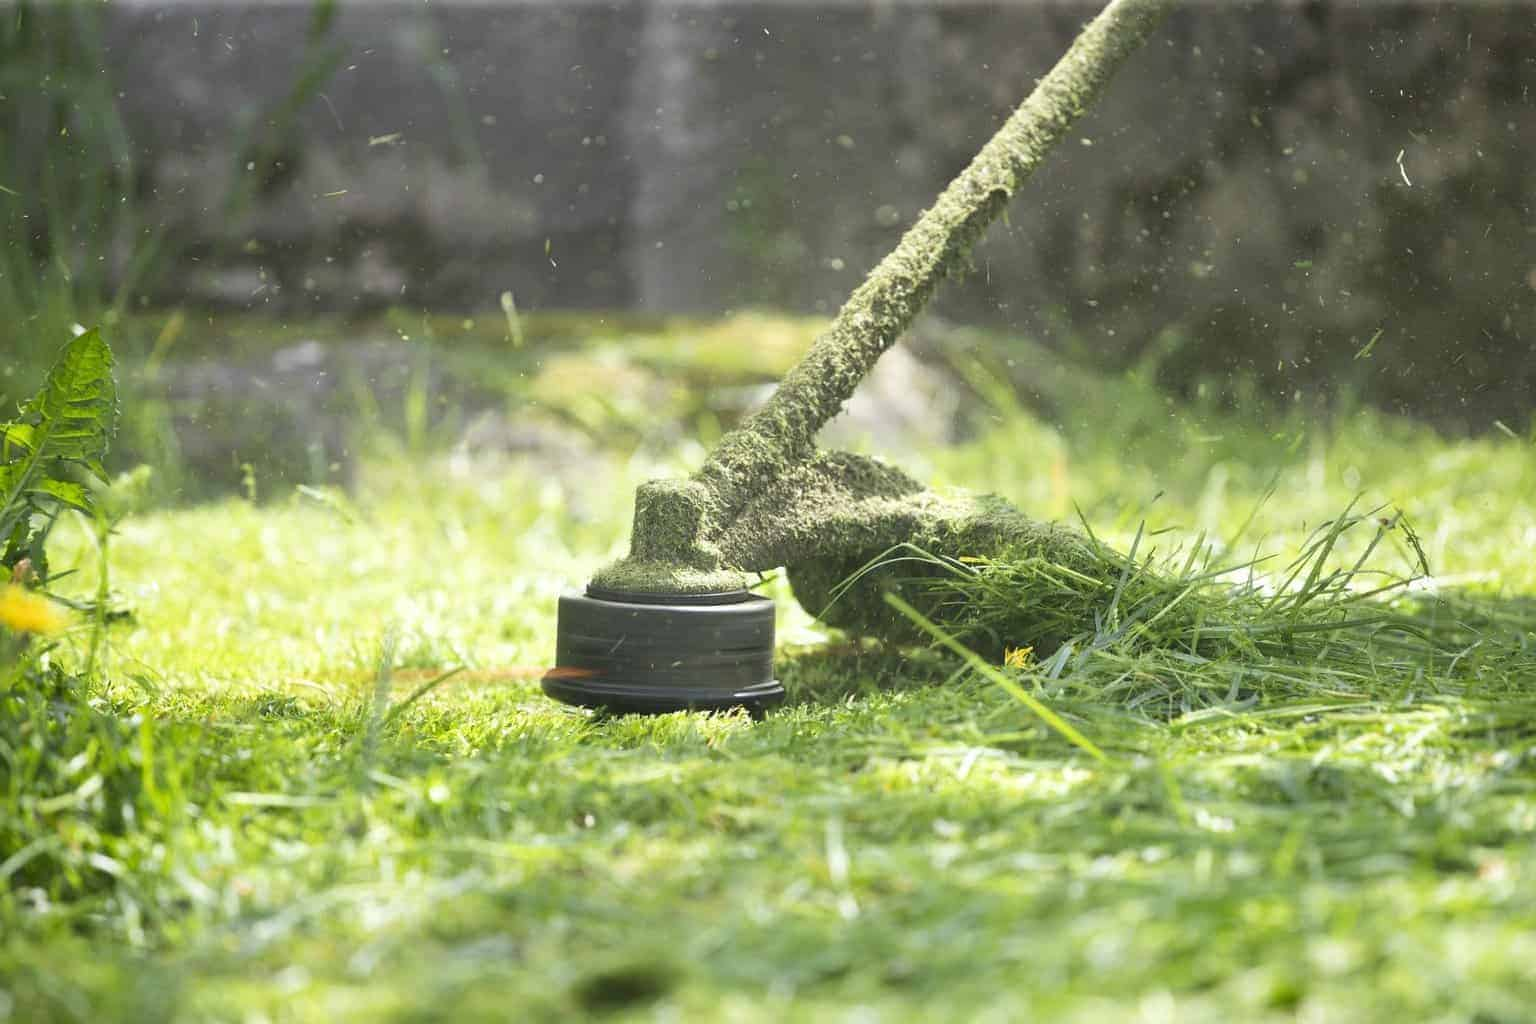 edger-vs-trimmer-lawn-care-review-guide